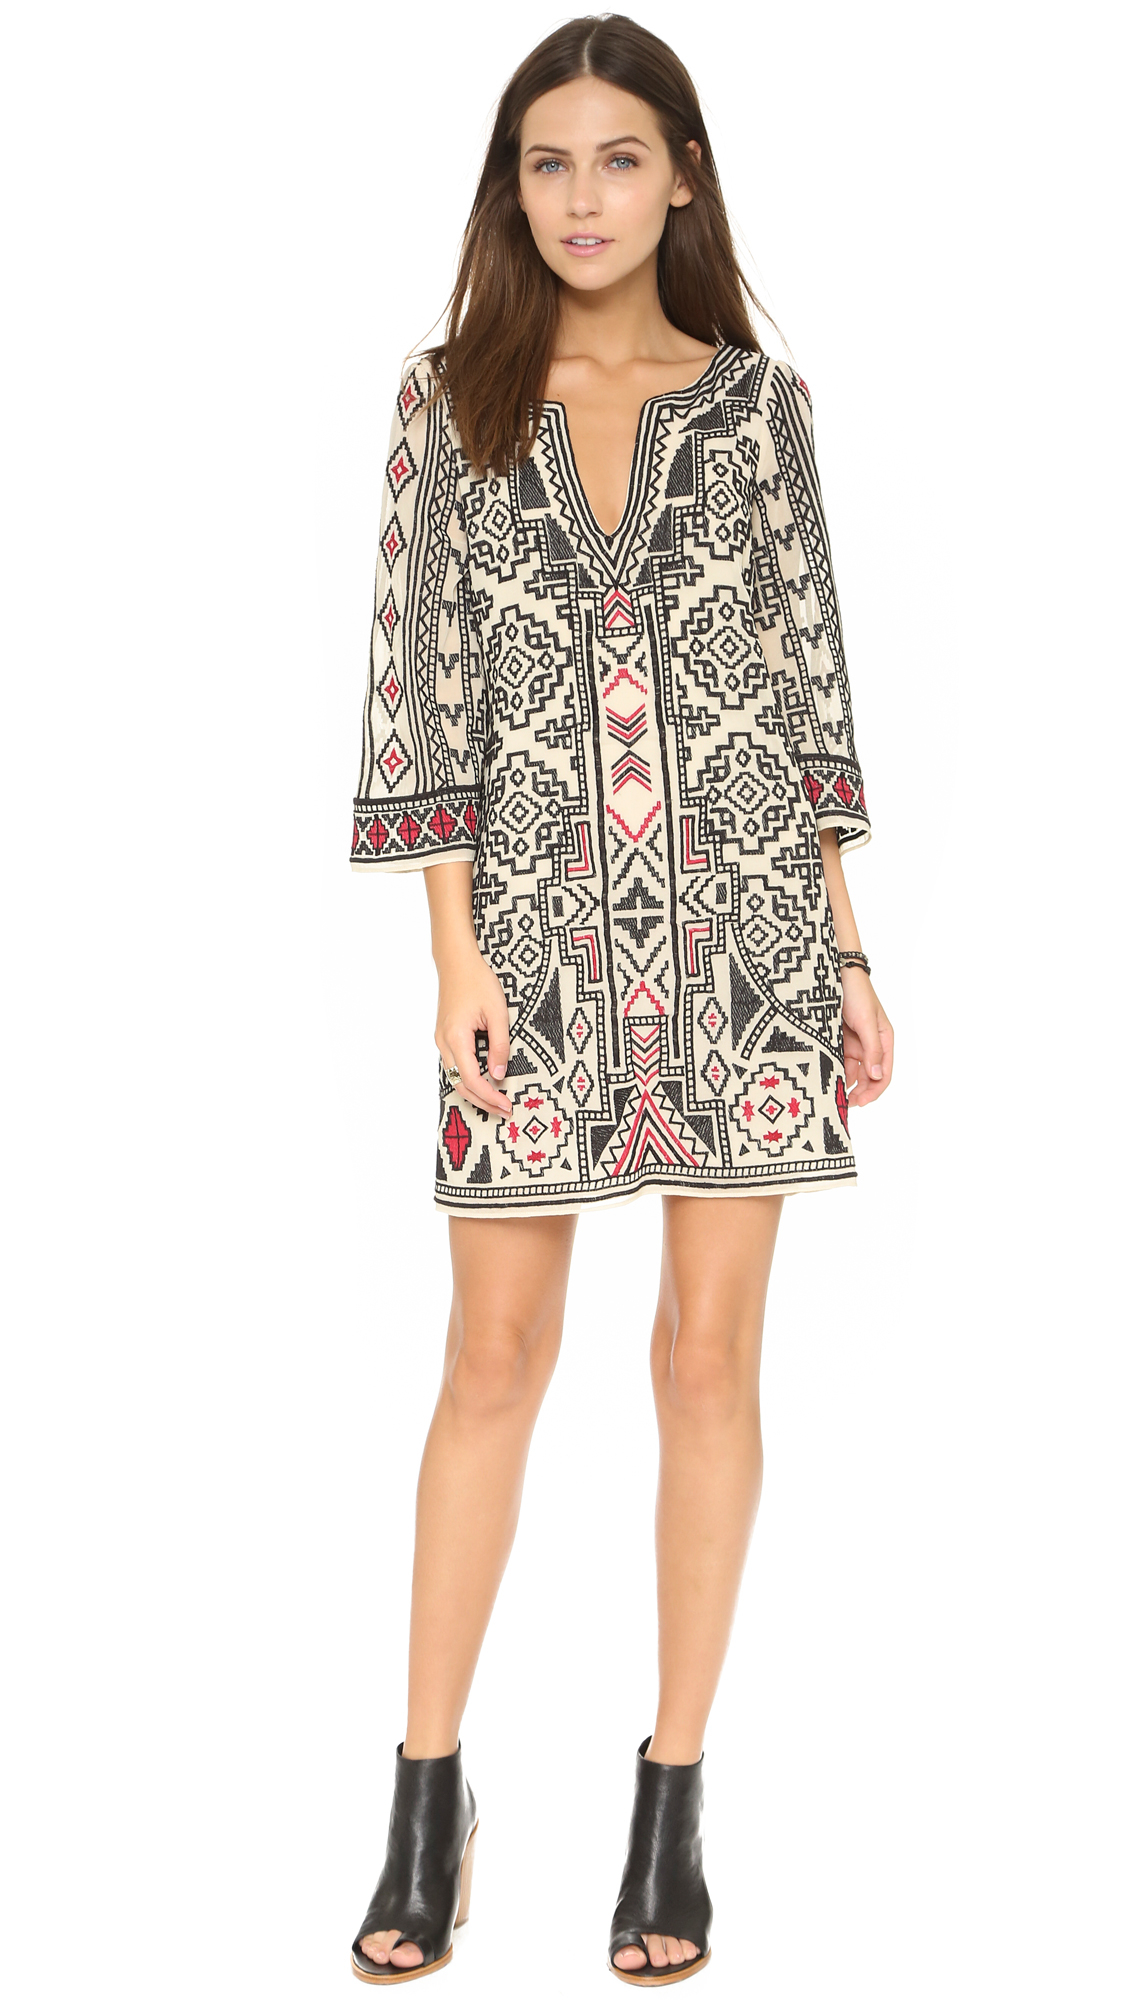 Alice Olivia Lowell Embroidered Dress Cream Black Red